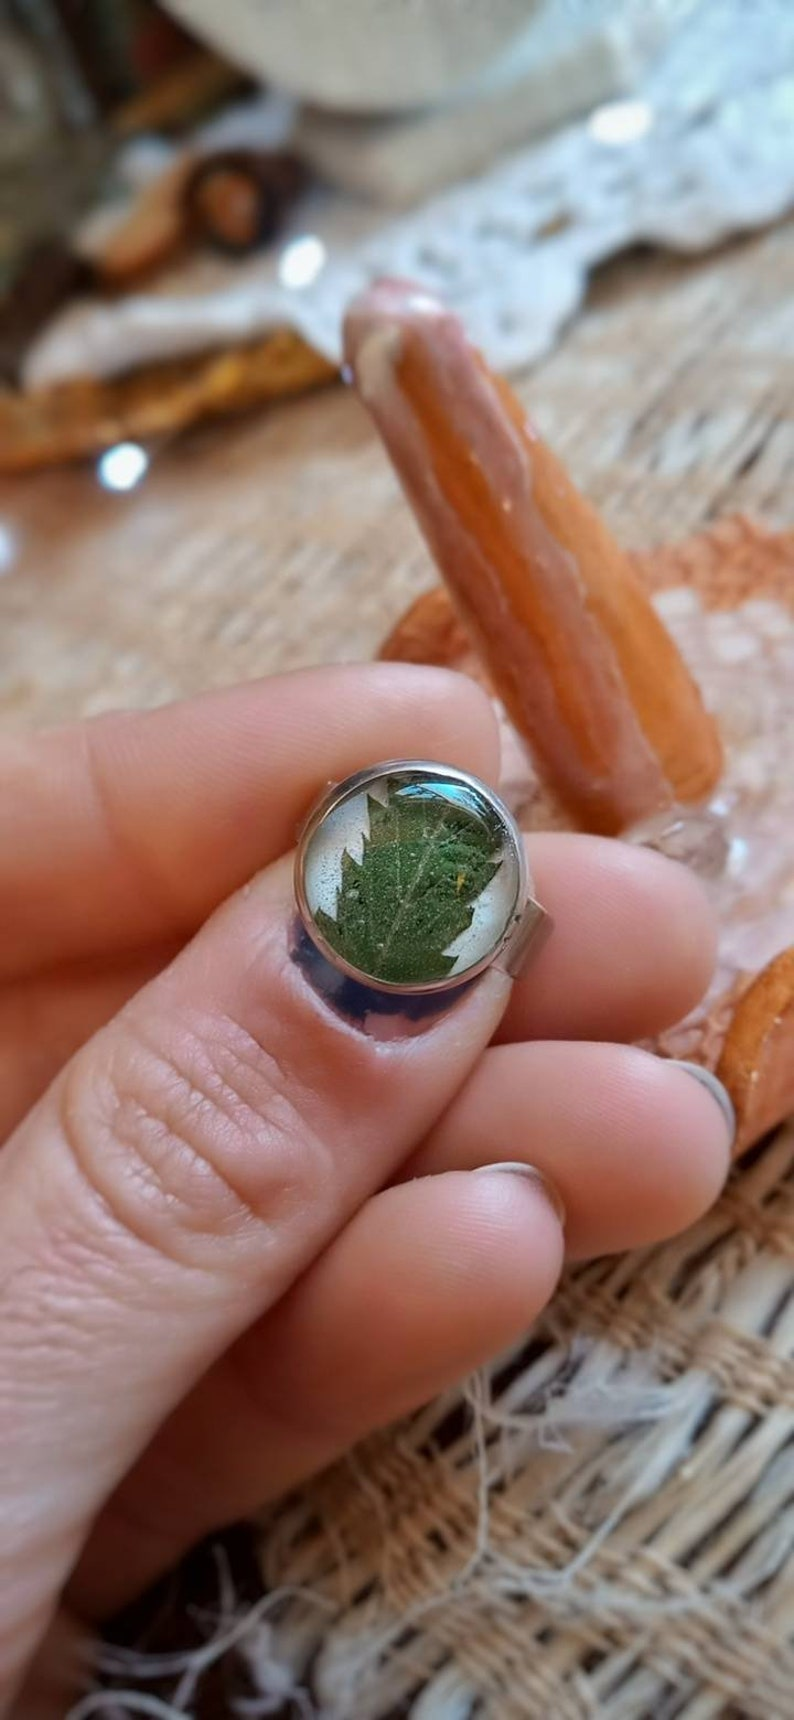 Cannabis stainless steel ring